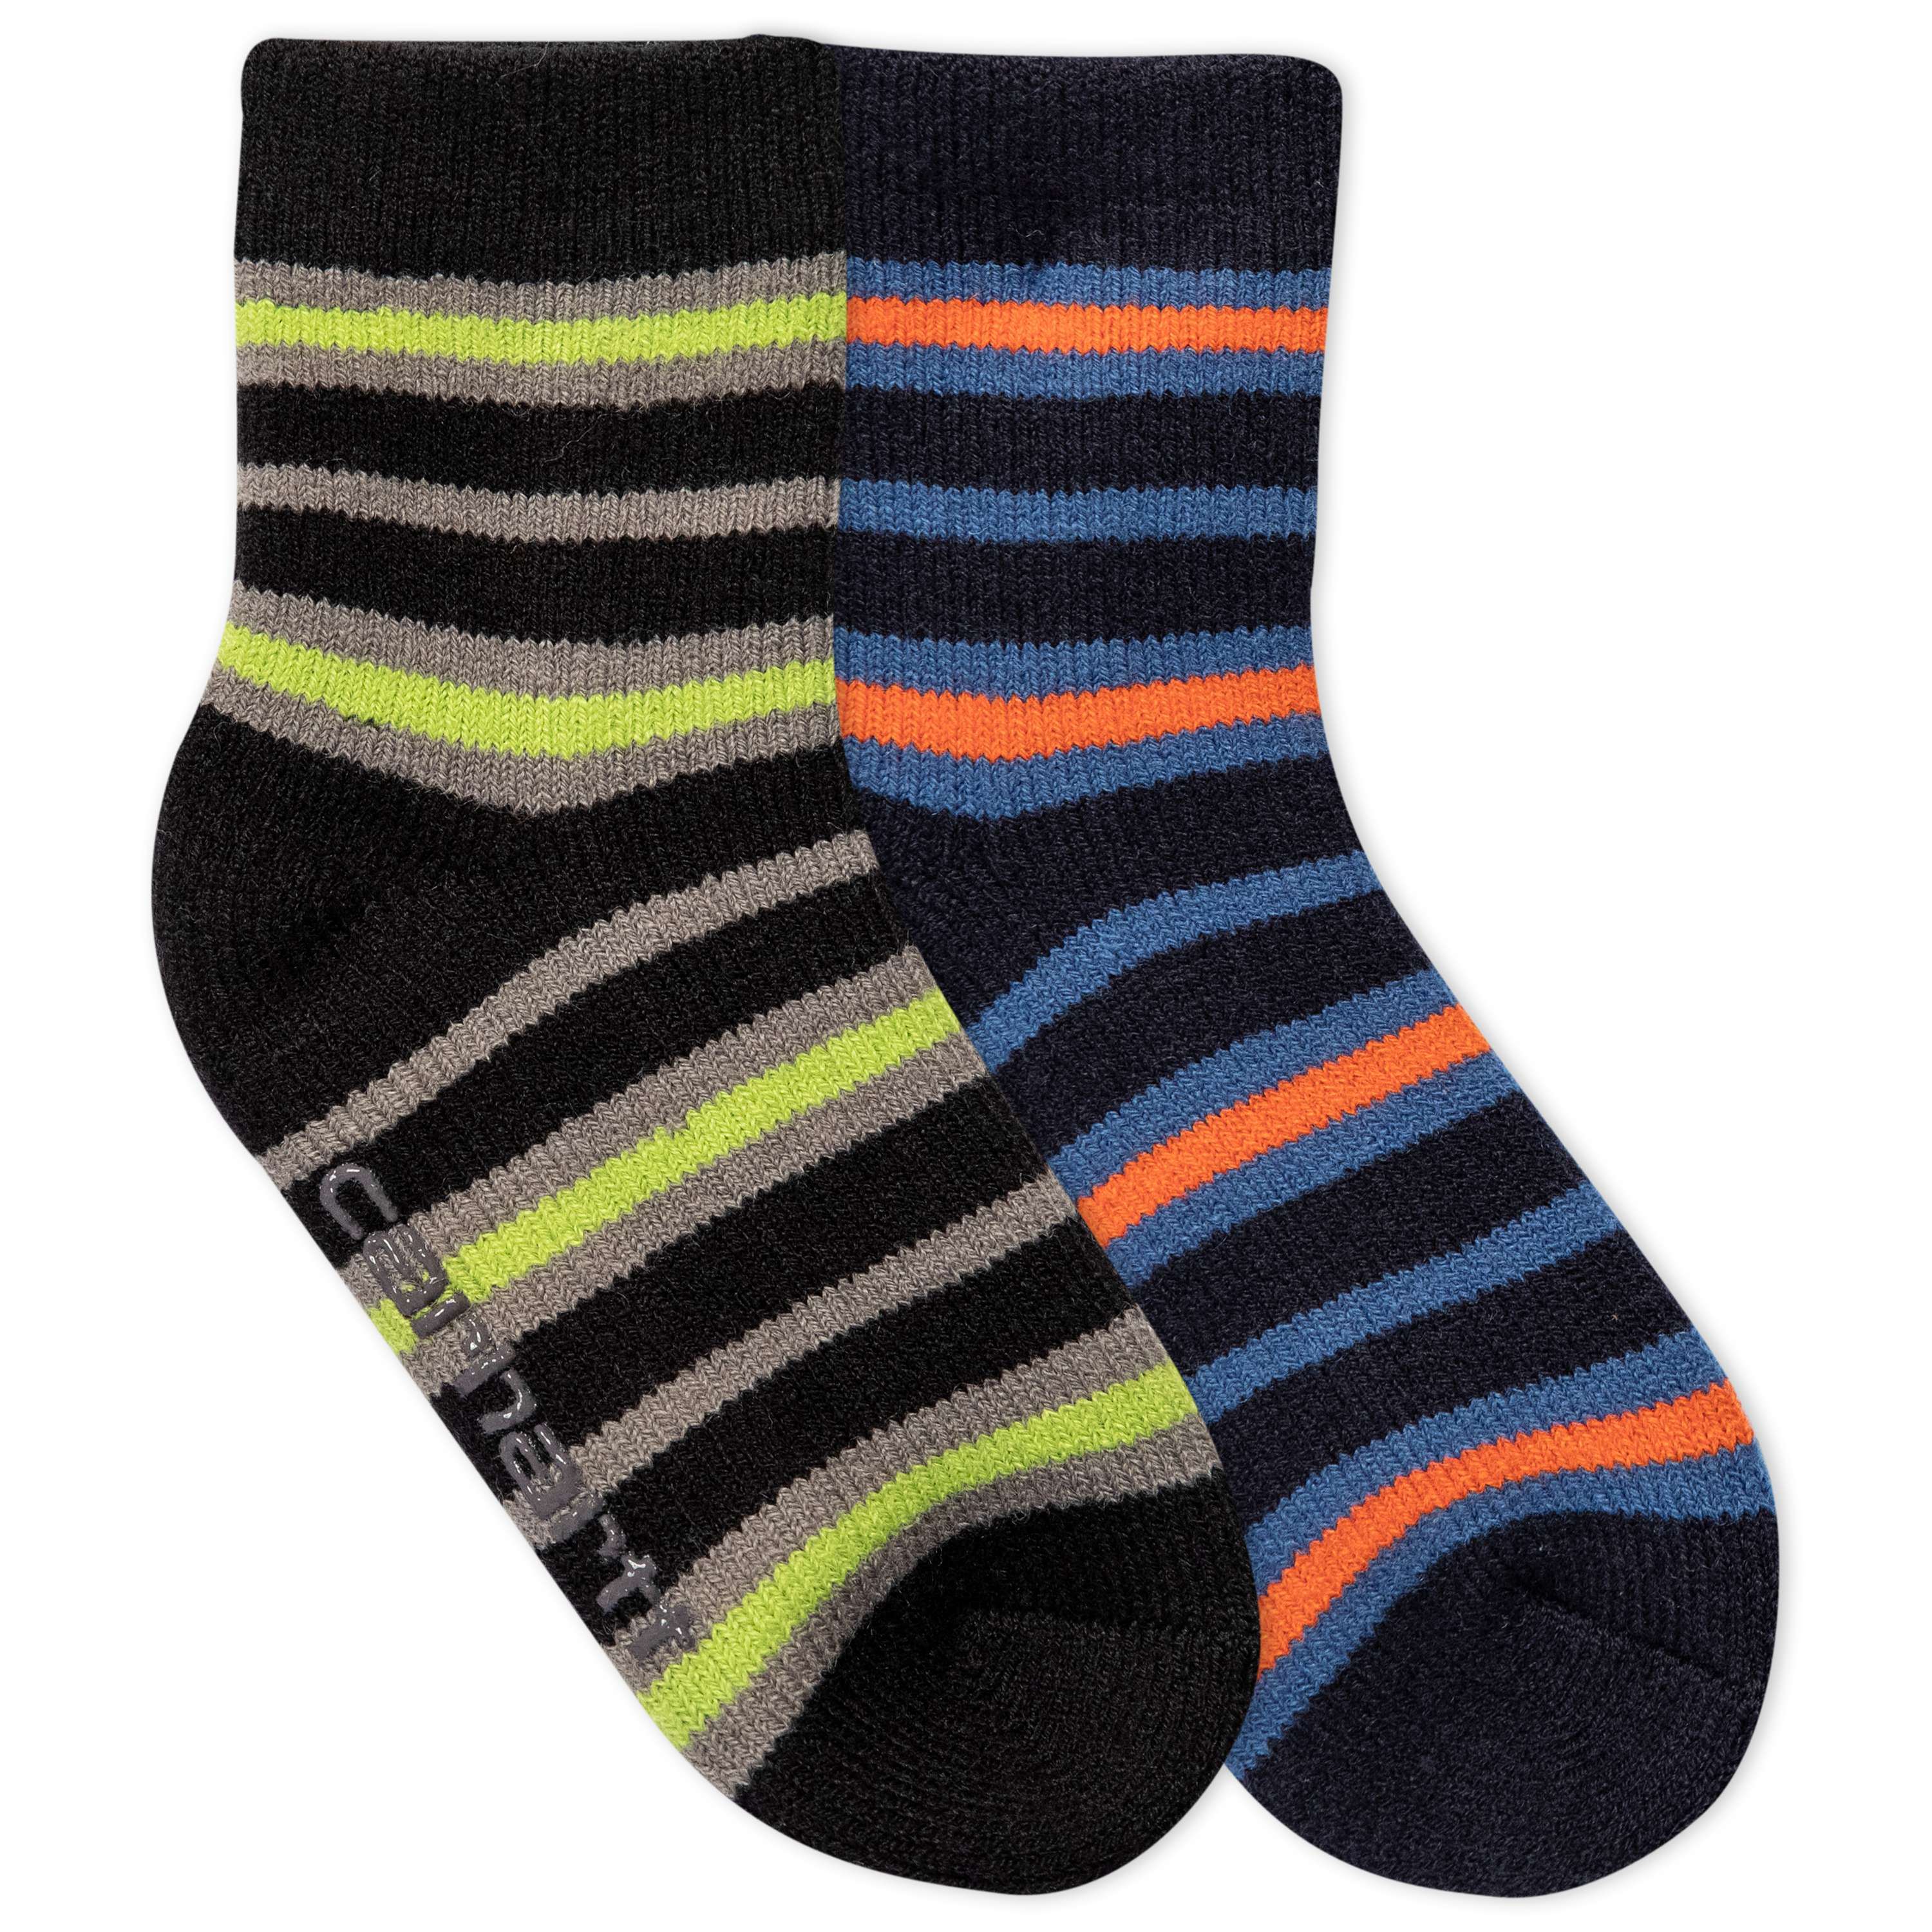 Carhartt Gripper Cozy Thermal Crew Socks 2 Pack